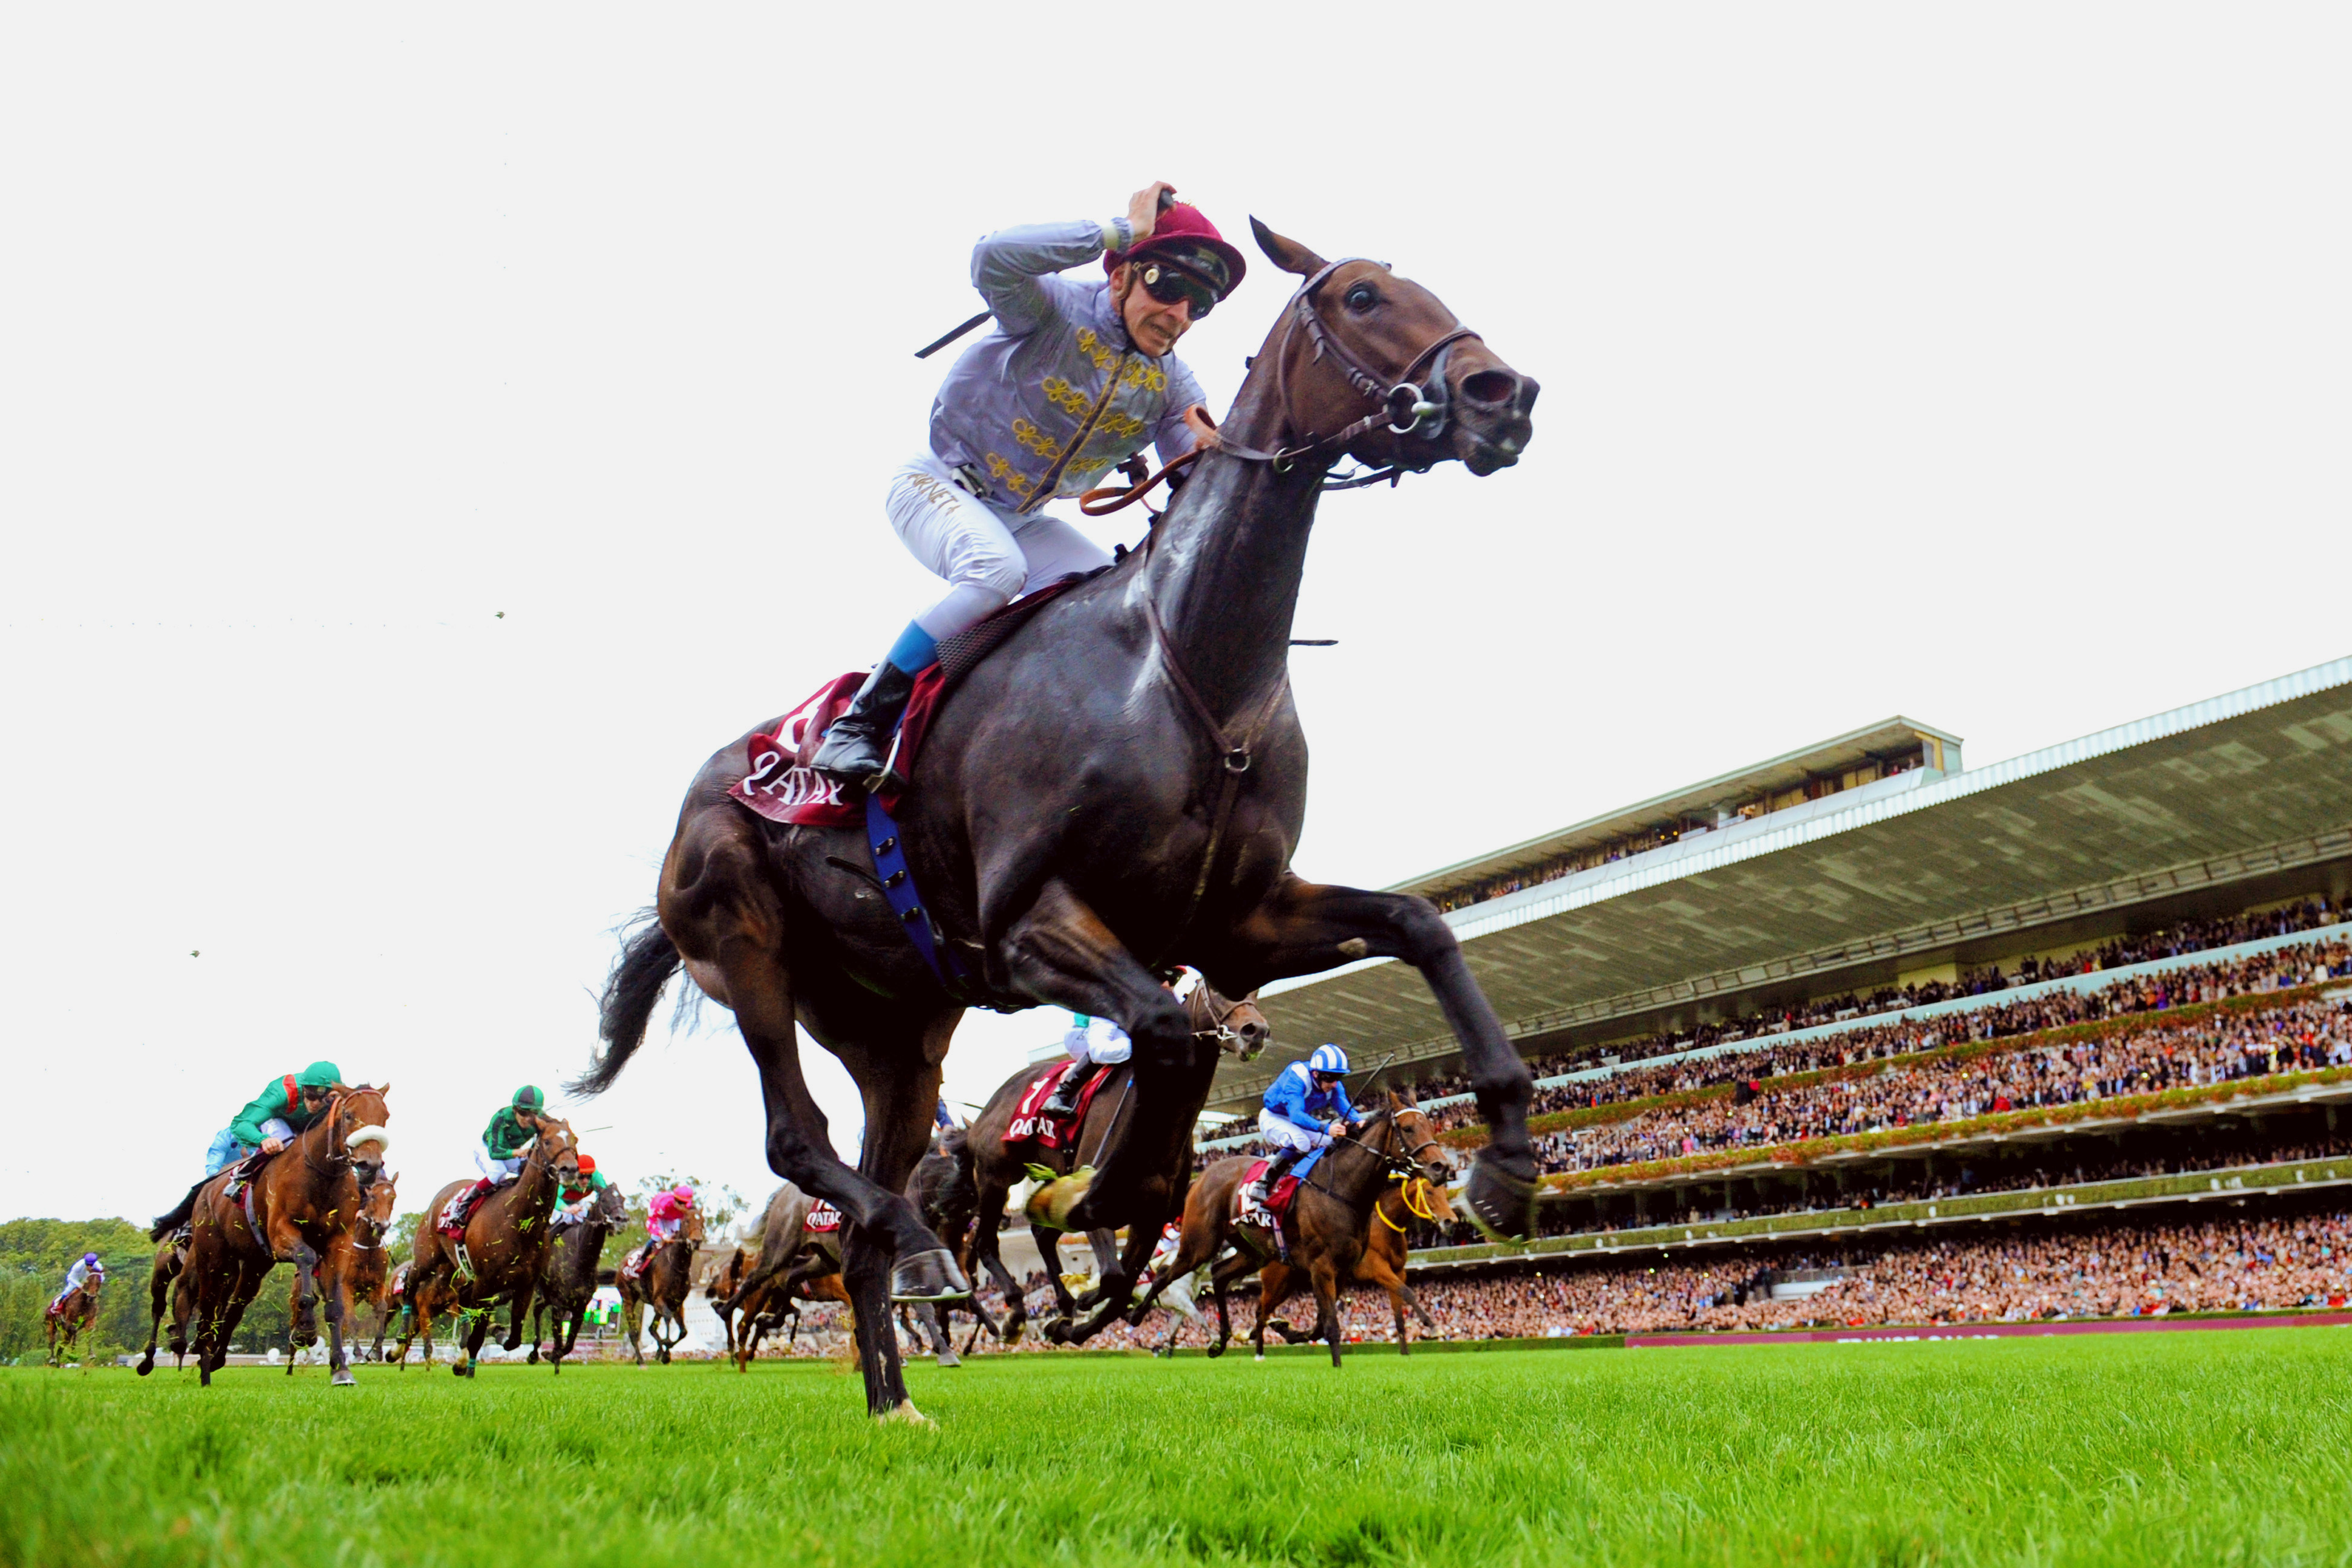 FILE - In this Oct. 5, 2014 file photo, Thierry Jarnet riding Treve crosses the finish line to win the Qatar Prix de l'Arc de Triomphe horse race at the Longchamp race track, outside Paris. Already a superstar in racing circles, Treve is gaining new fans